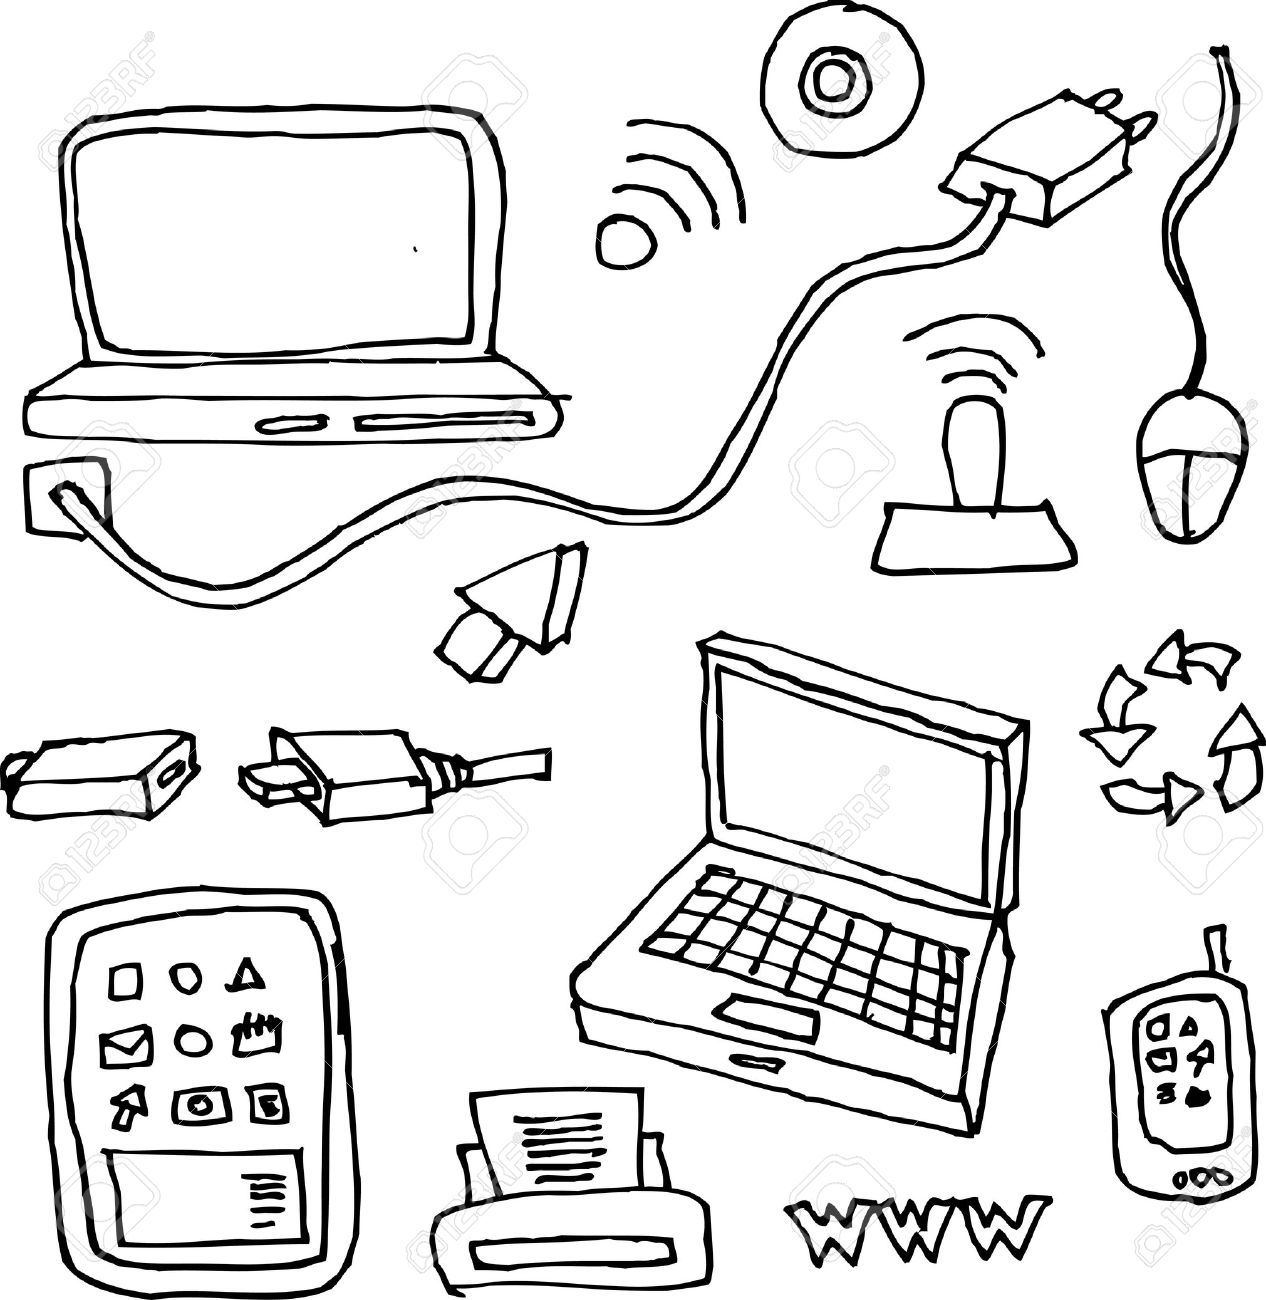 1266x1300 Drawing By Hand Of Computers, Tablets, Printers, Cables